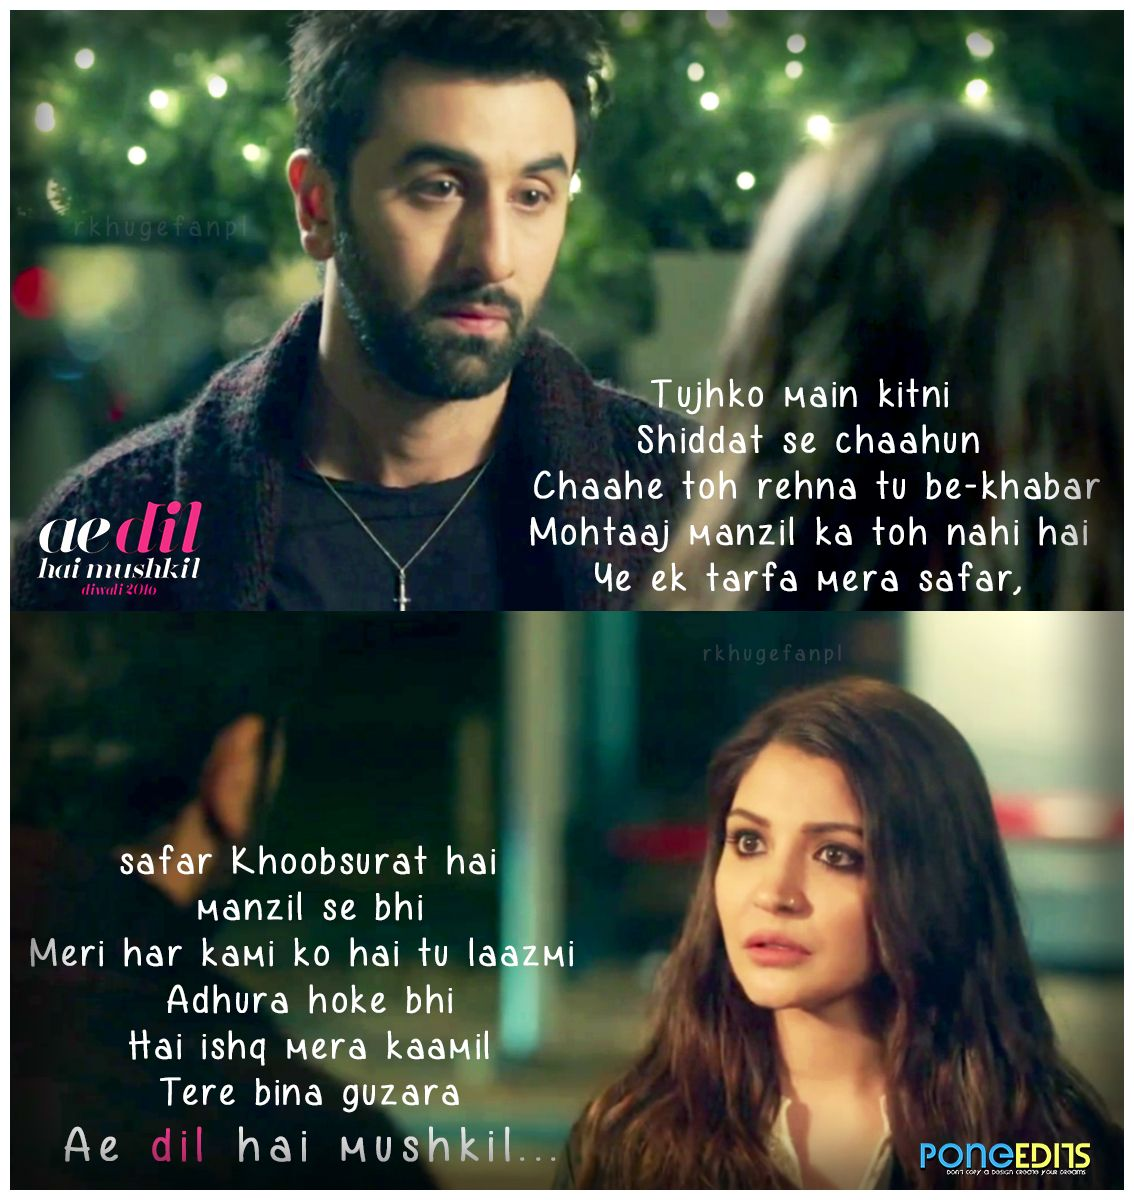 Ae Dil Hai Mushkil Dialogue In English Ranbir Kapoor Anushka Sharma Ae Dil Hai Mushkil Love Song Quotes Romantic Song Lyrics Song Lyric Quotes